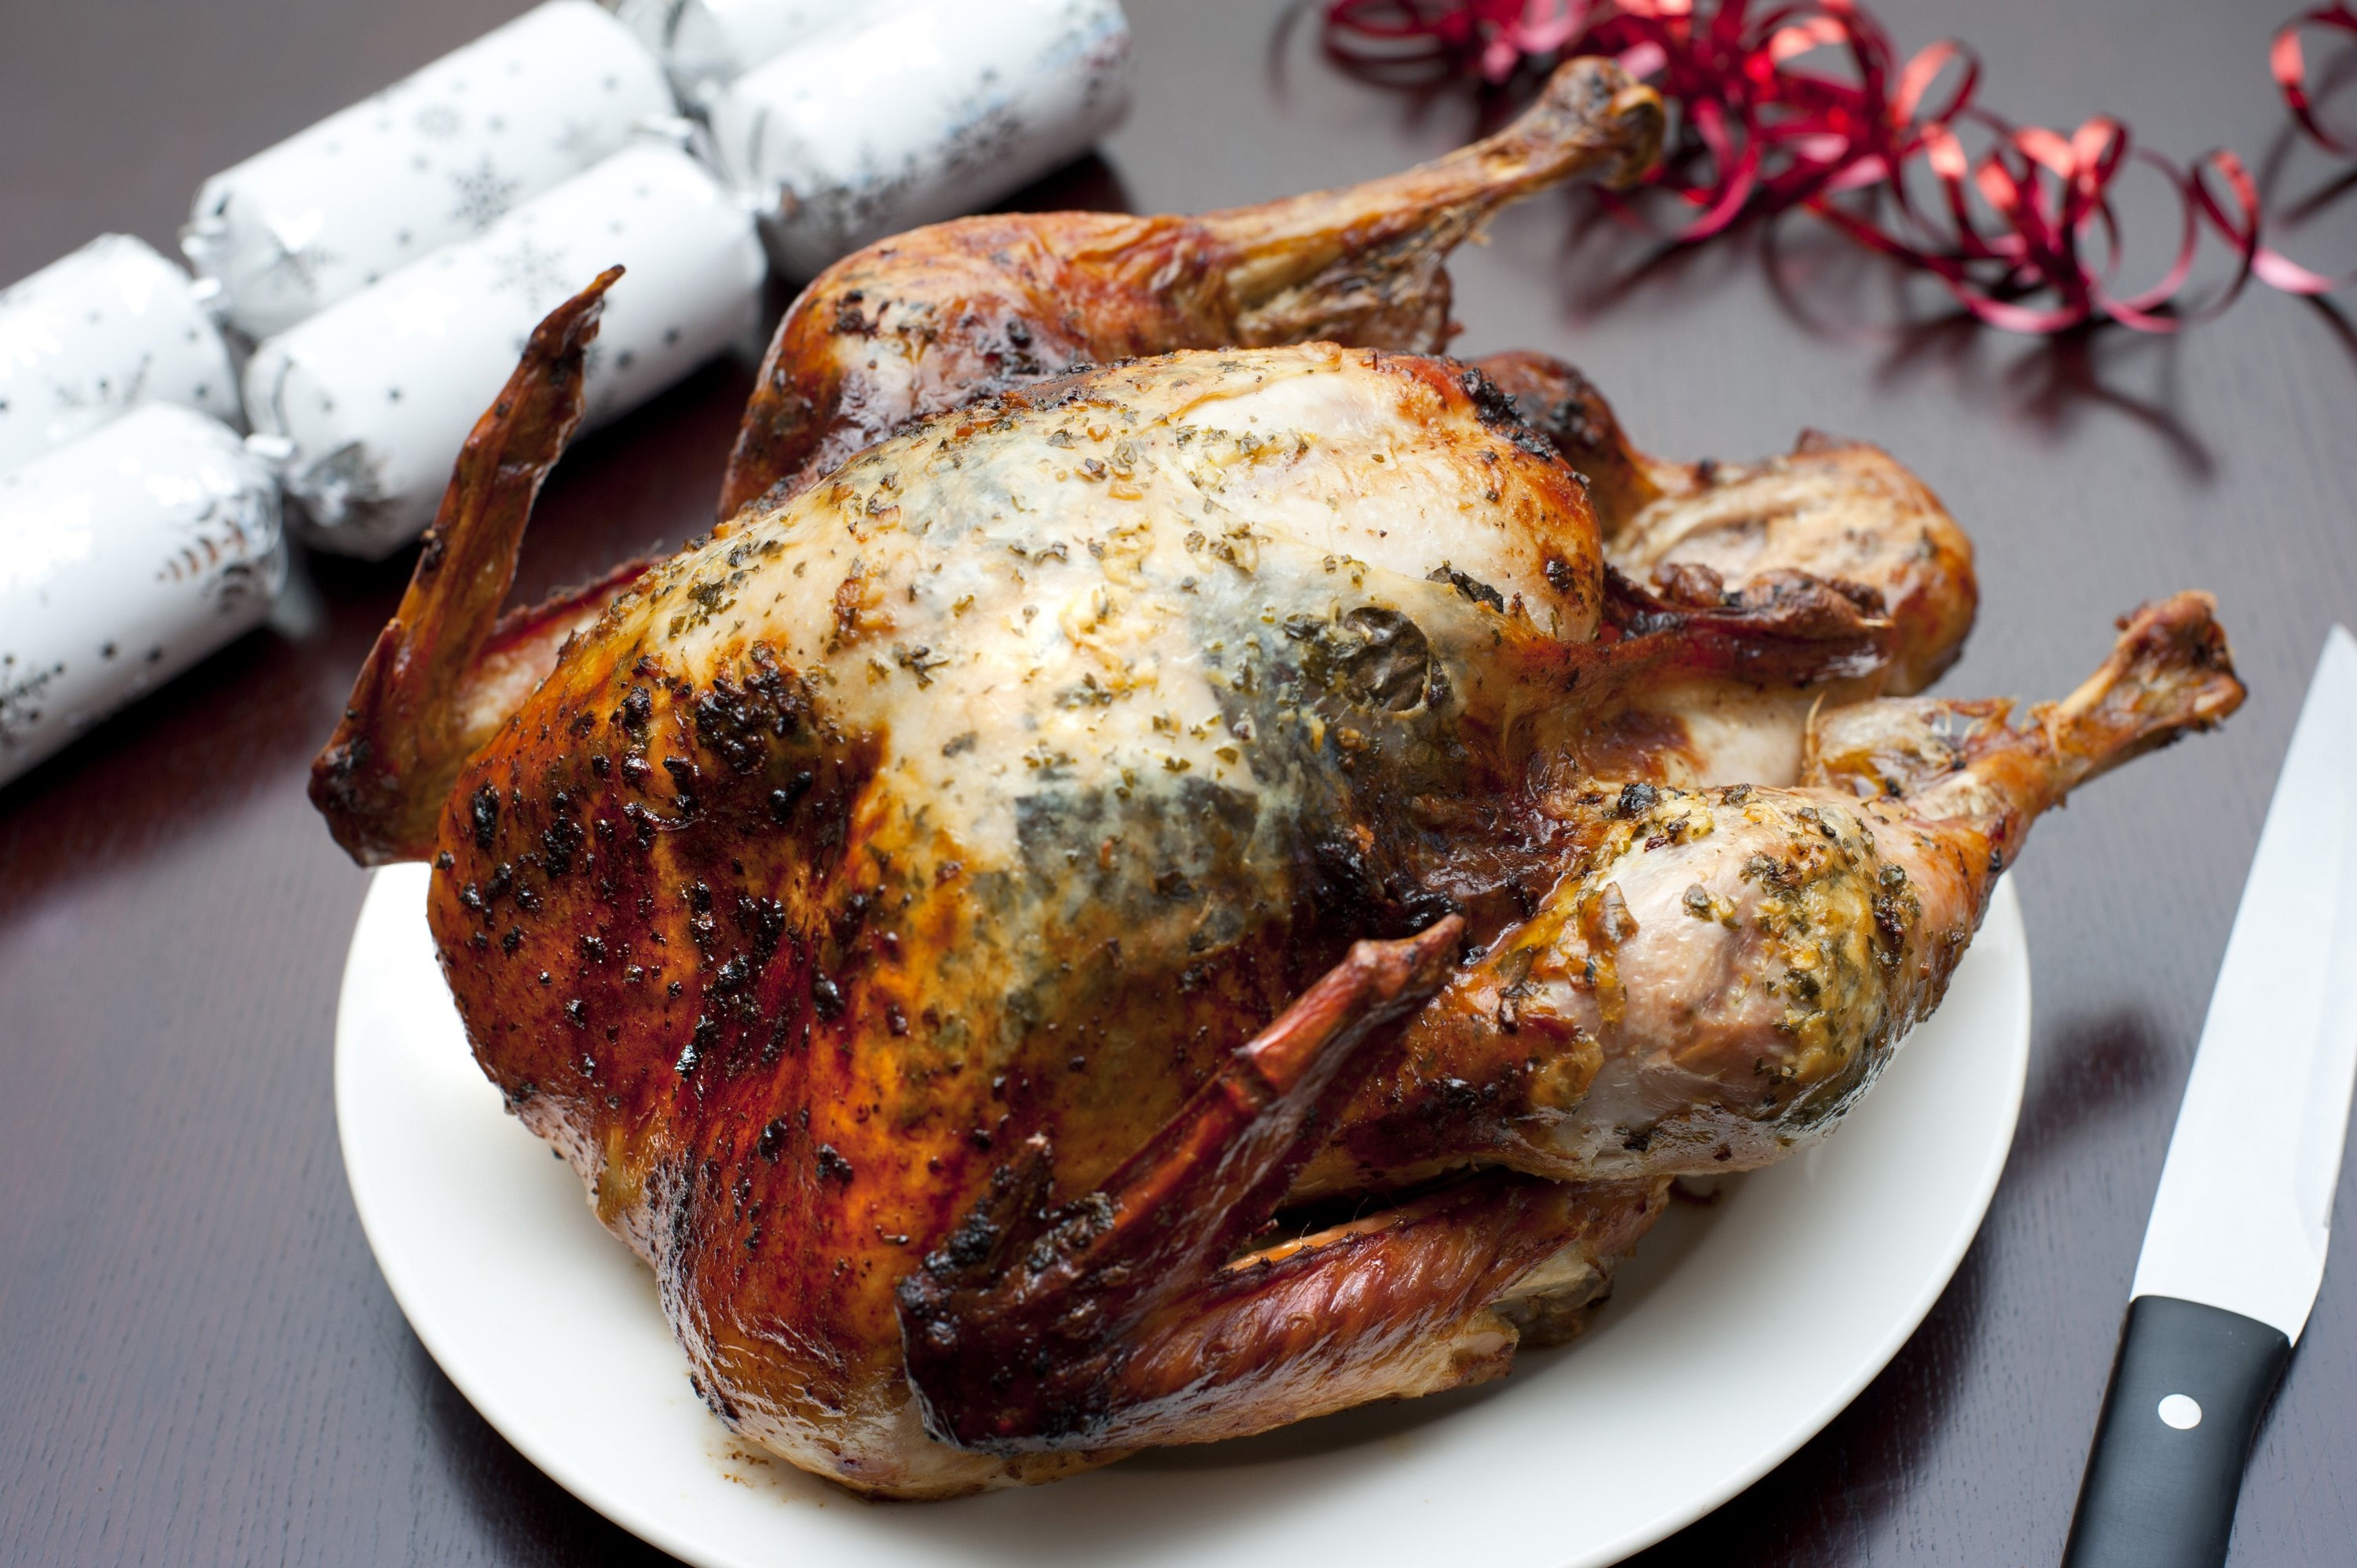 High angle view of a crispy whole roast festive turkey on a plate for Christmas or Thanksgiving celebrations